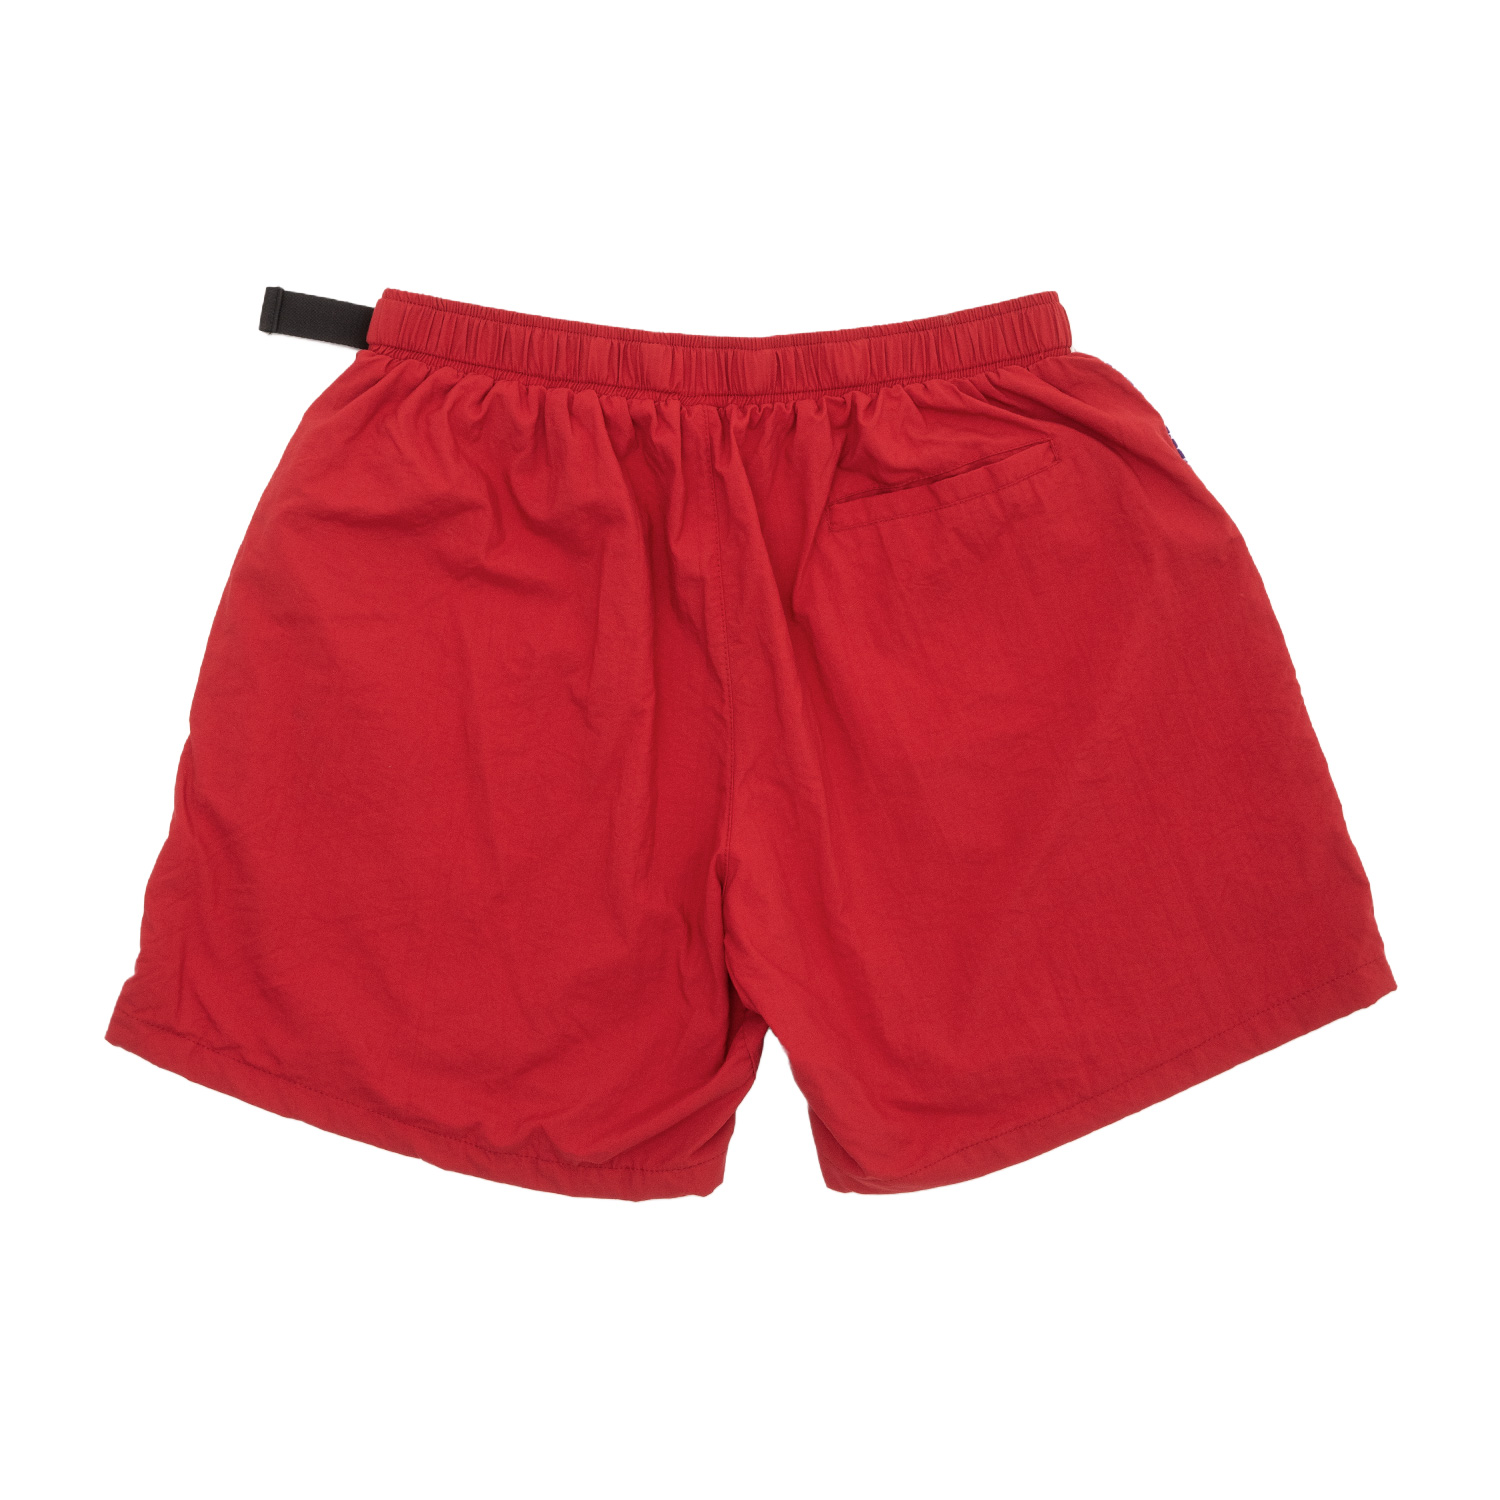 Strapped_Shorts_Logo_Red